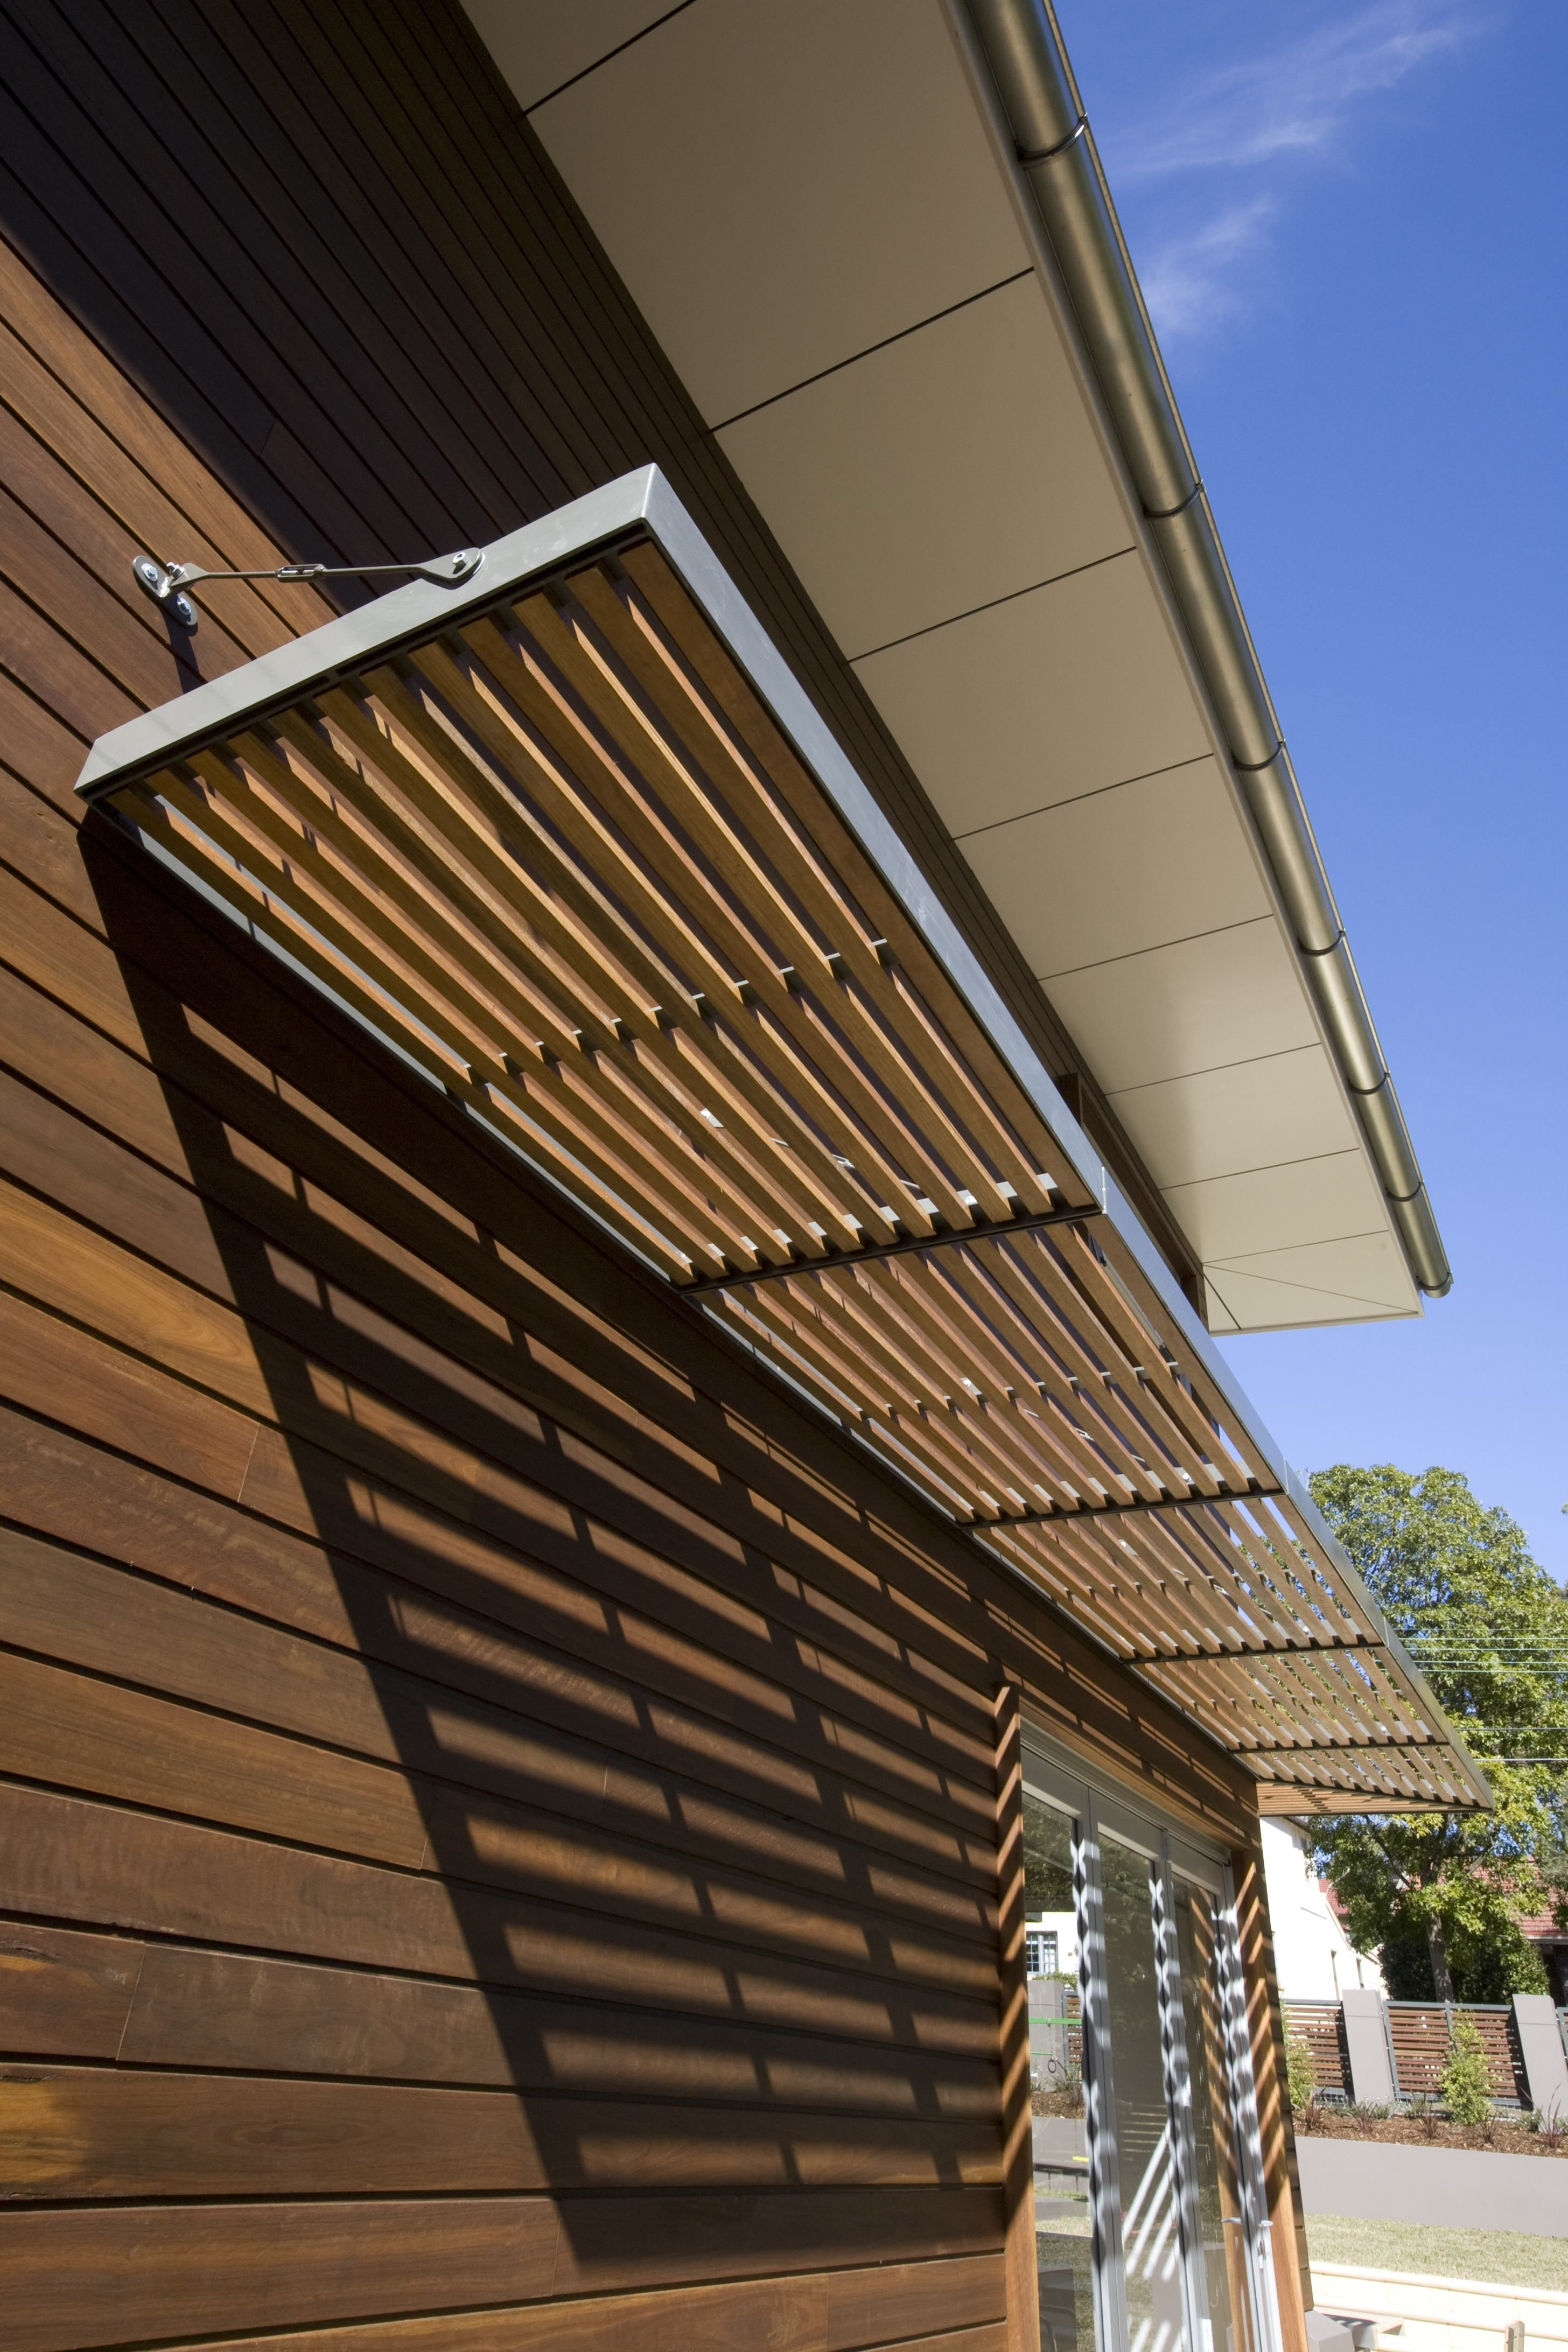 Awning Metal Frame With Wooden Slats Structural Garden